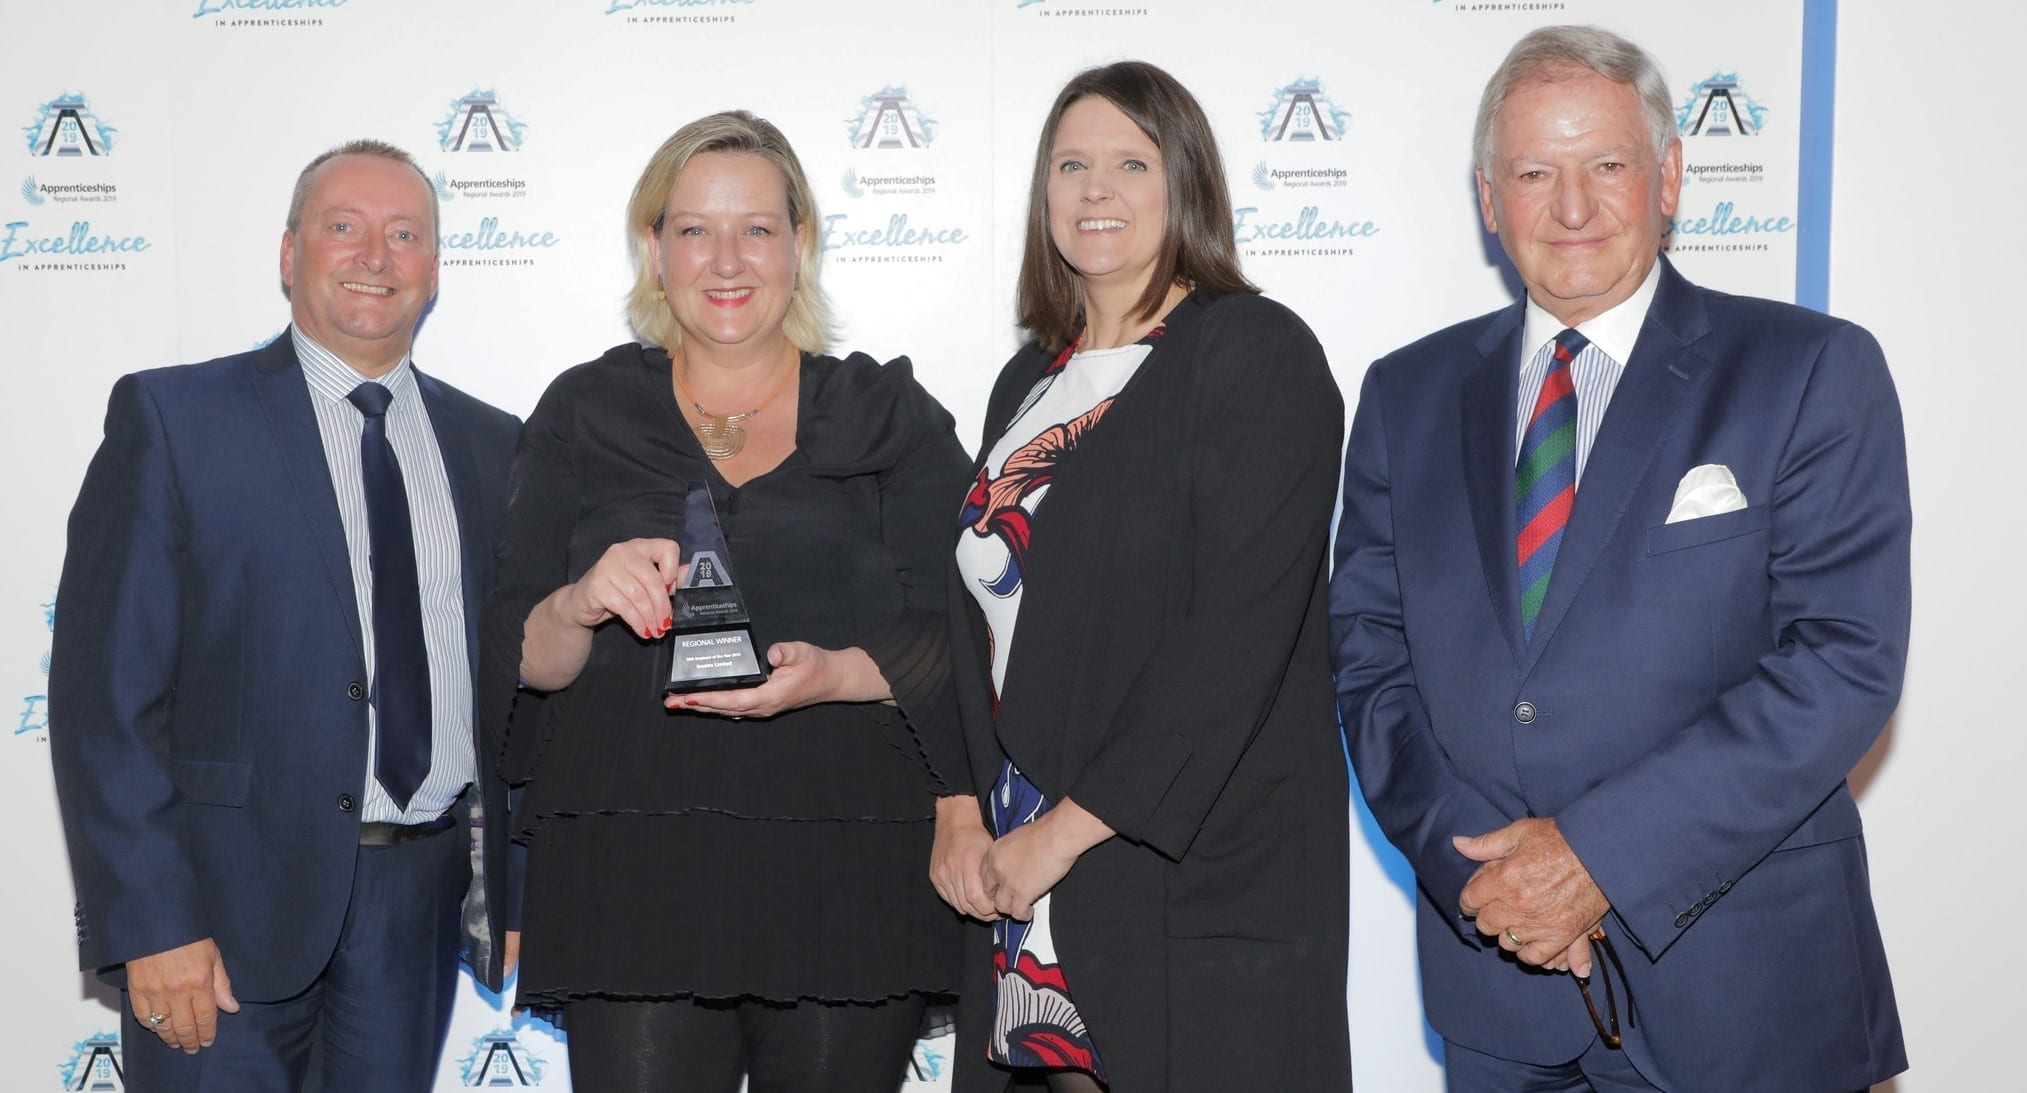 Steve Latus, Alison Galvin, Lisa Parker, Michael Grant at app awards